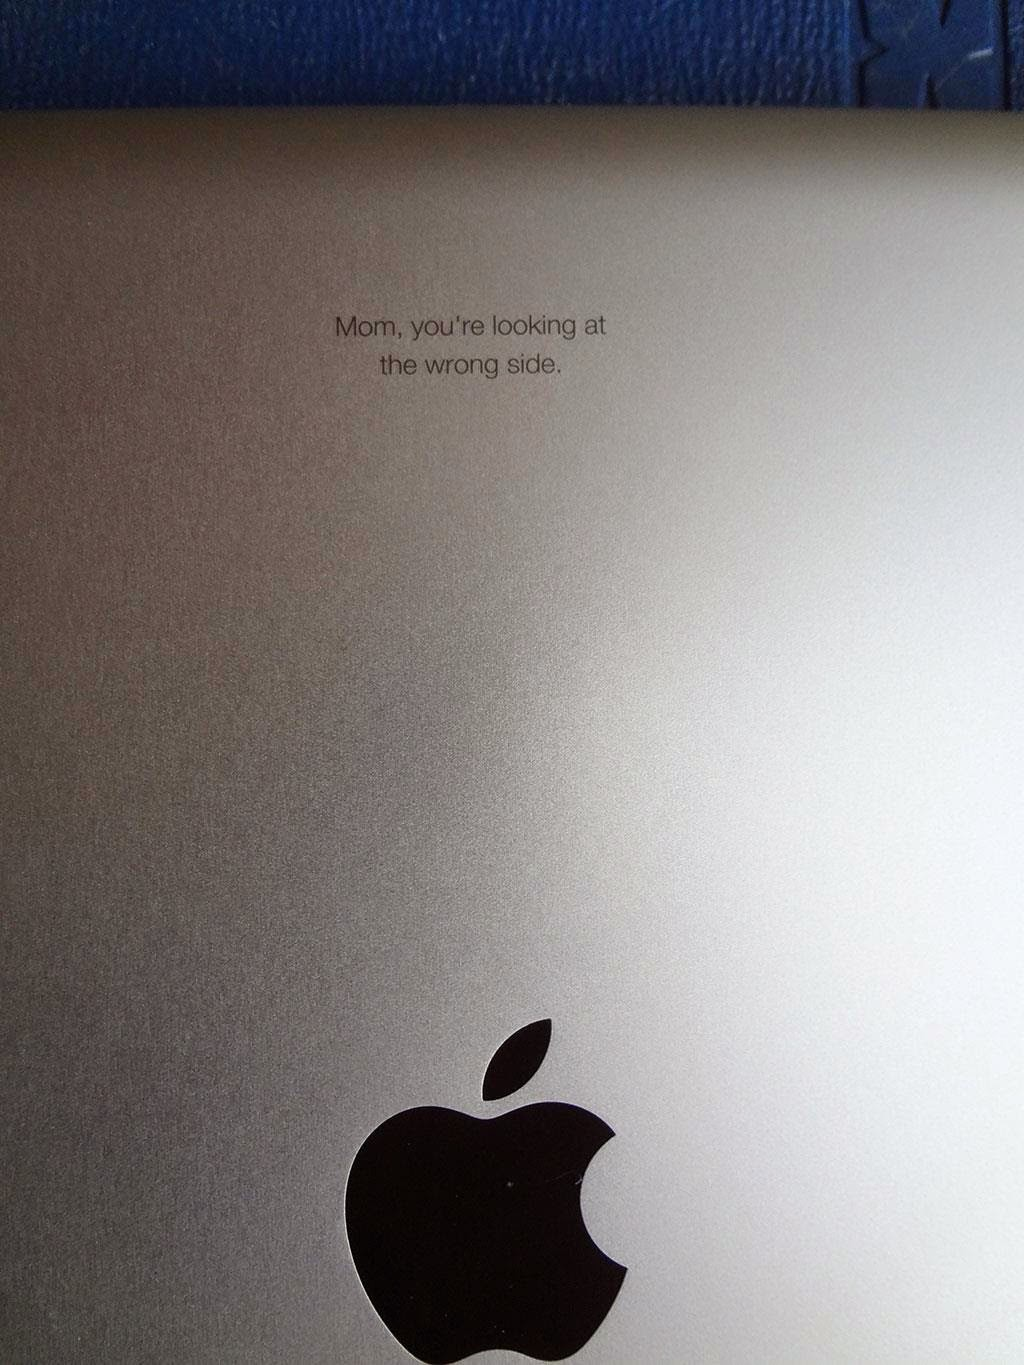 When Giving Your Mother an iPad, The Following Engraving is Recommended